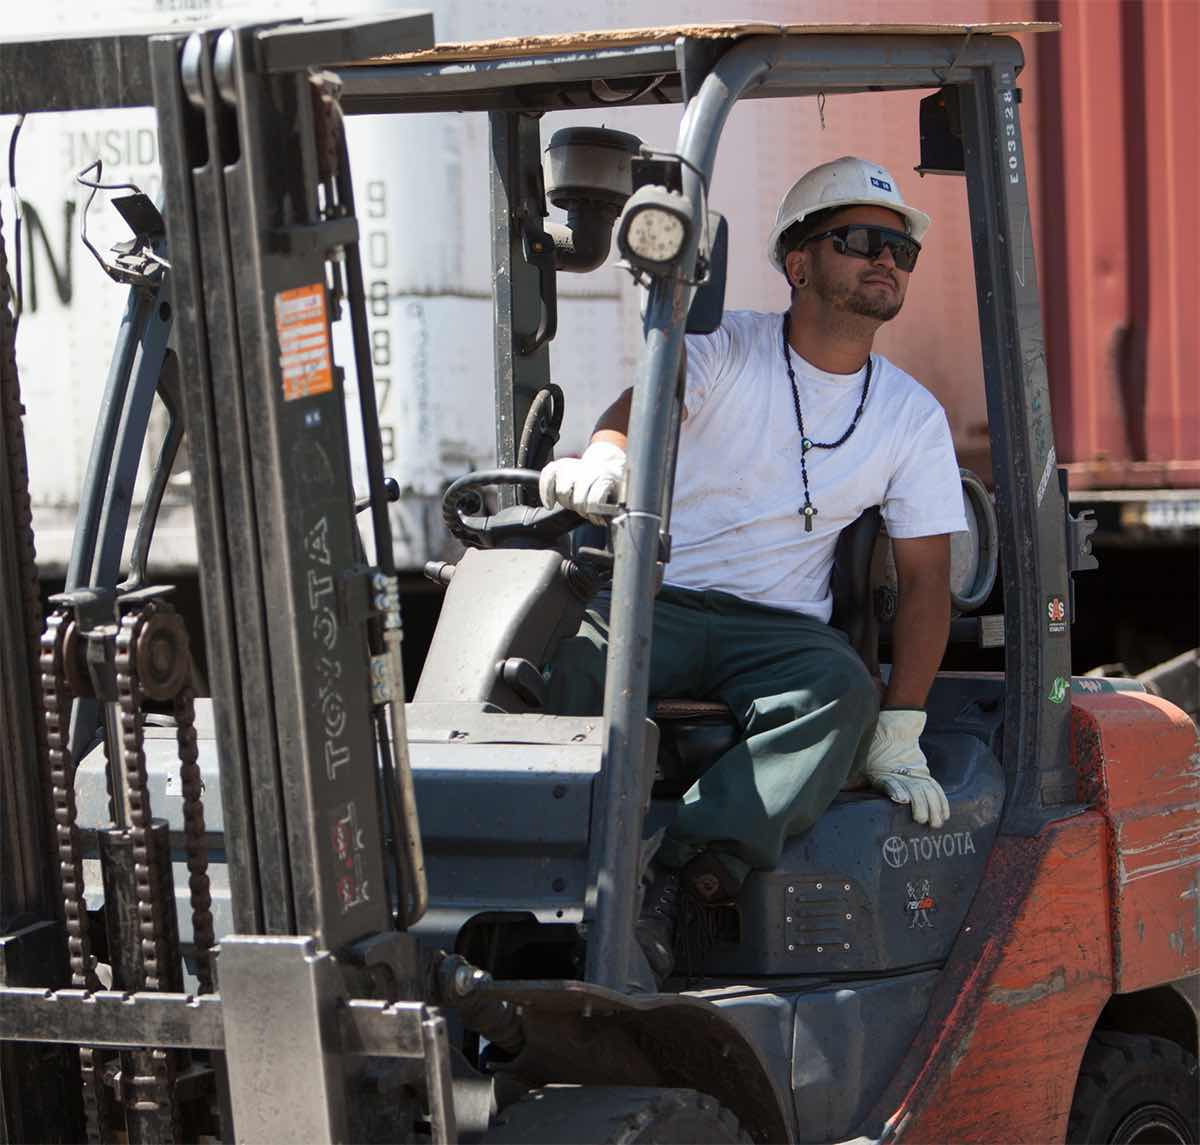 Allan Company Fork Lift and Team Member